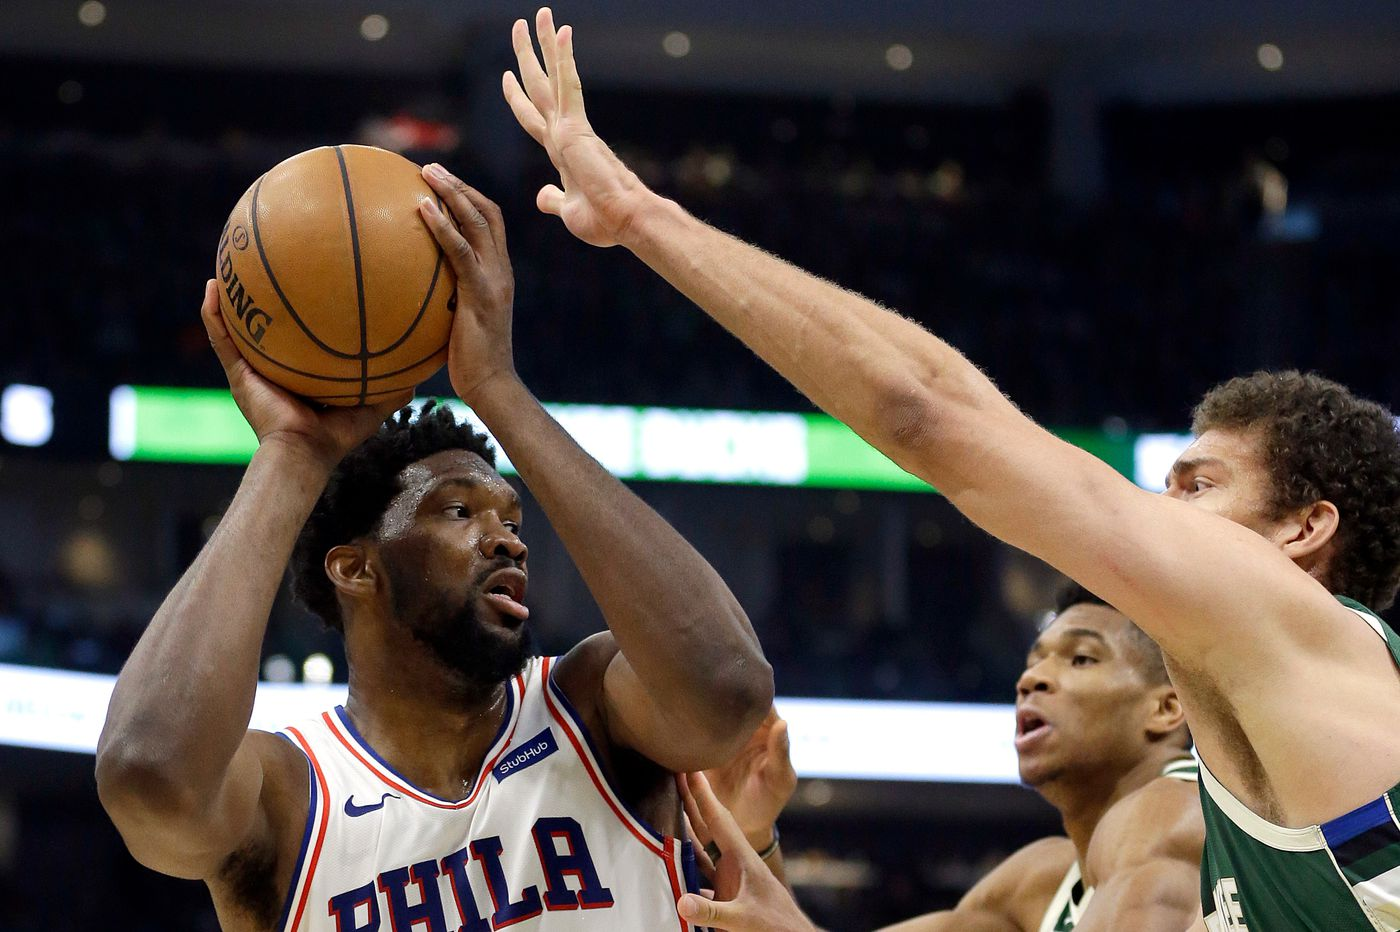 Sixers' Joel Embiid to miss Tuesday's game against Hornets